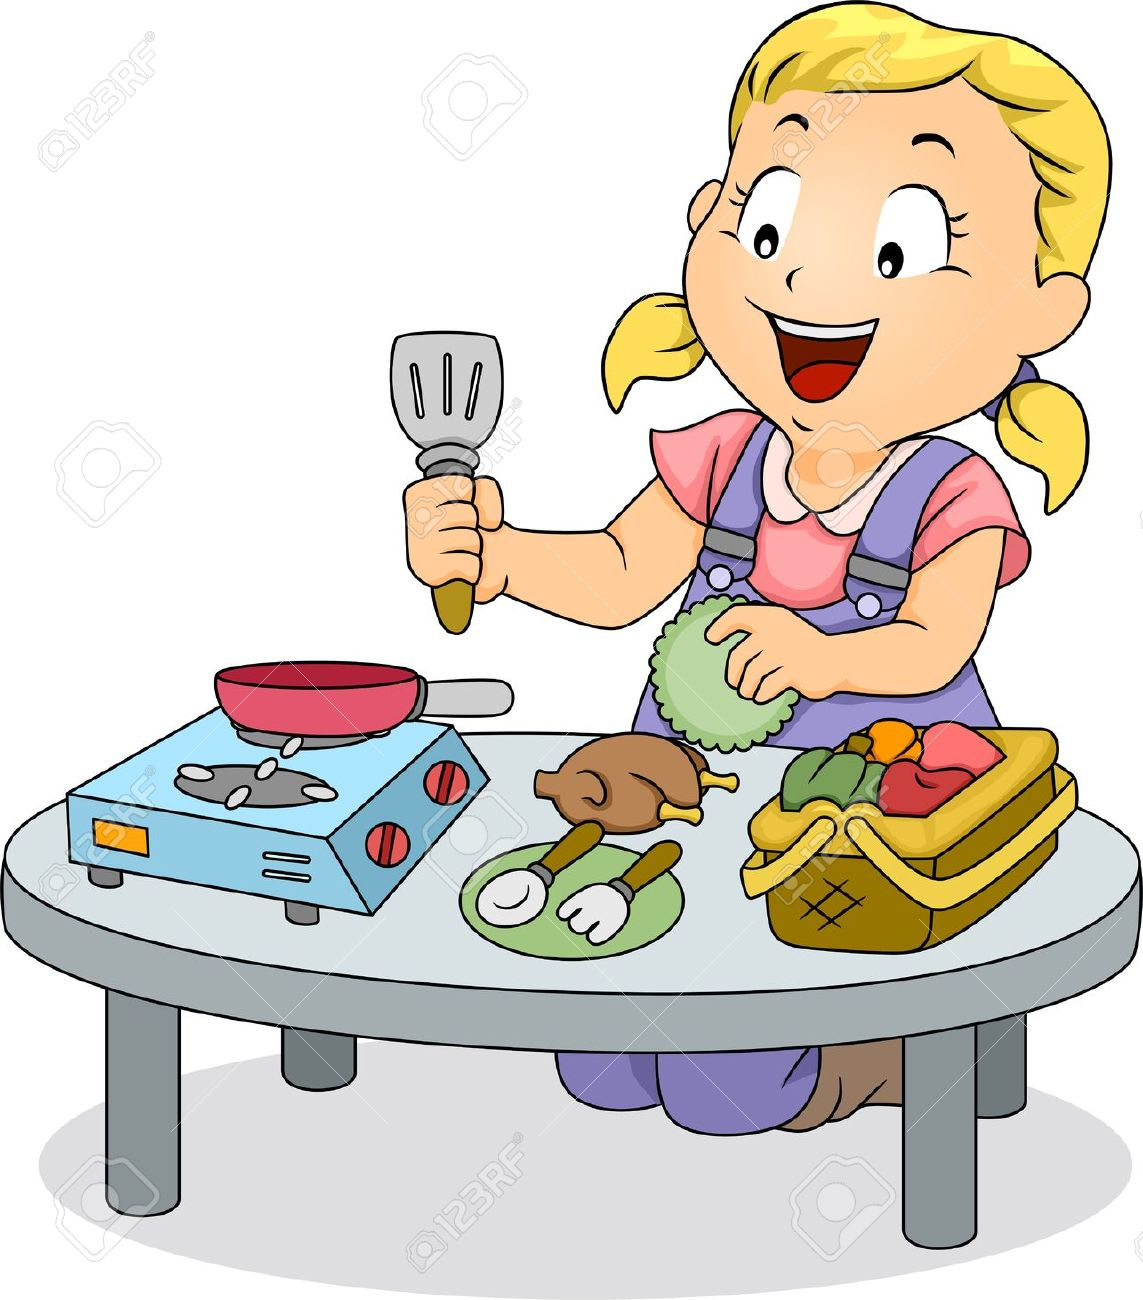 Play kitchen clip art - Illustration Of A Little Kid Girl Playing With Kitchen Toys Stock Illustration 20217062